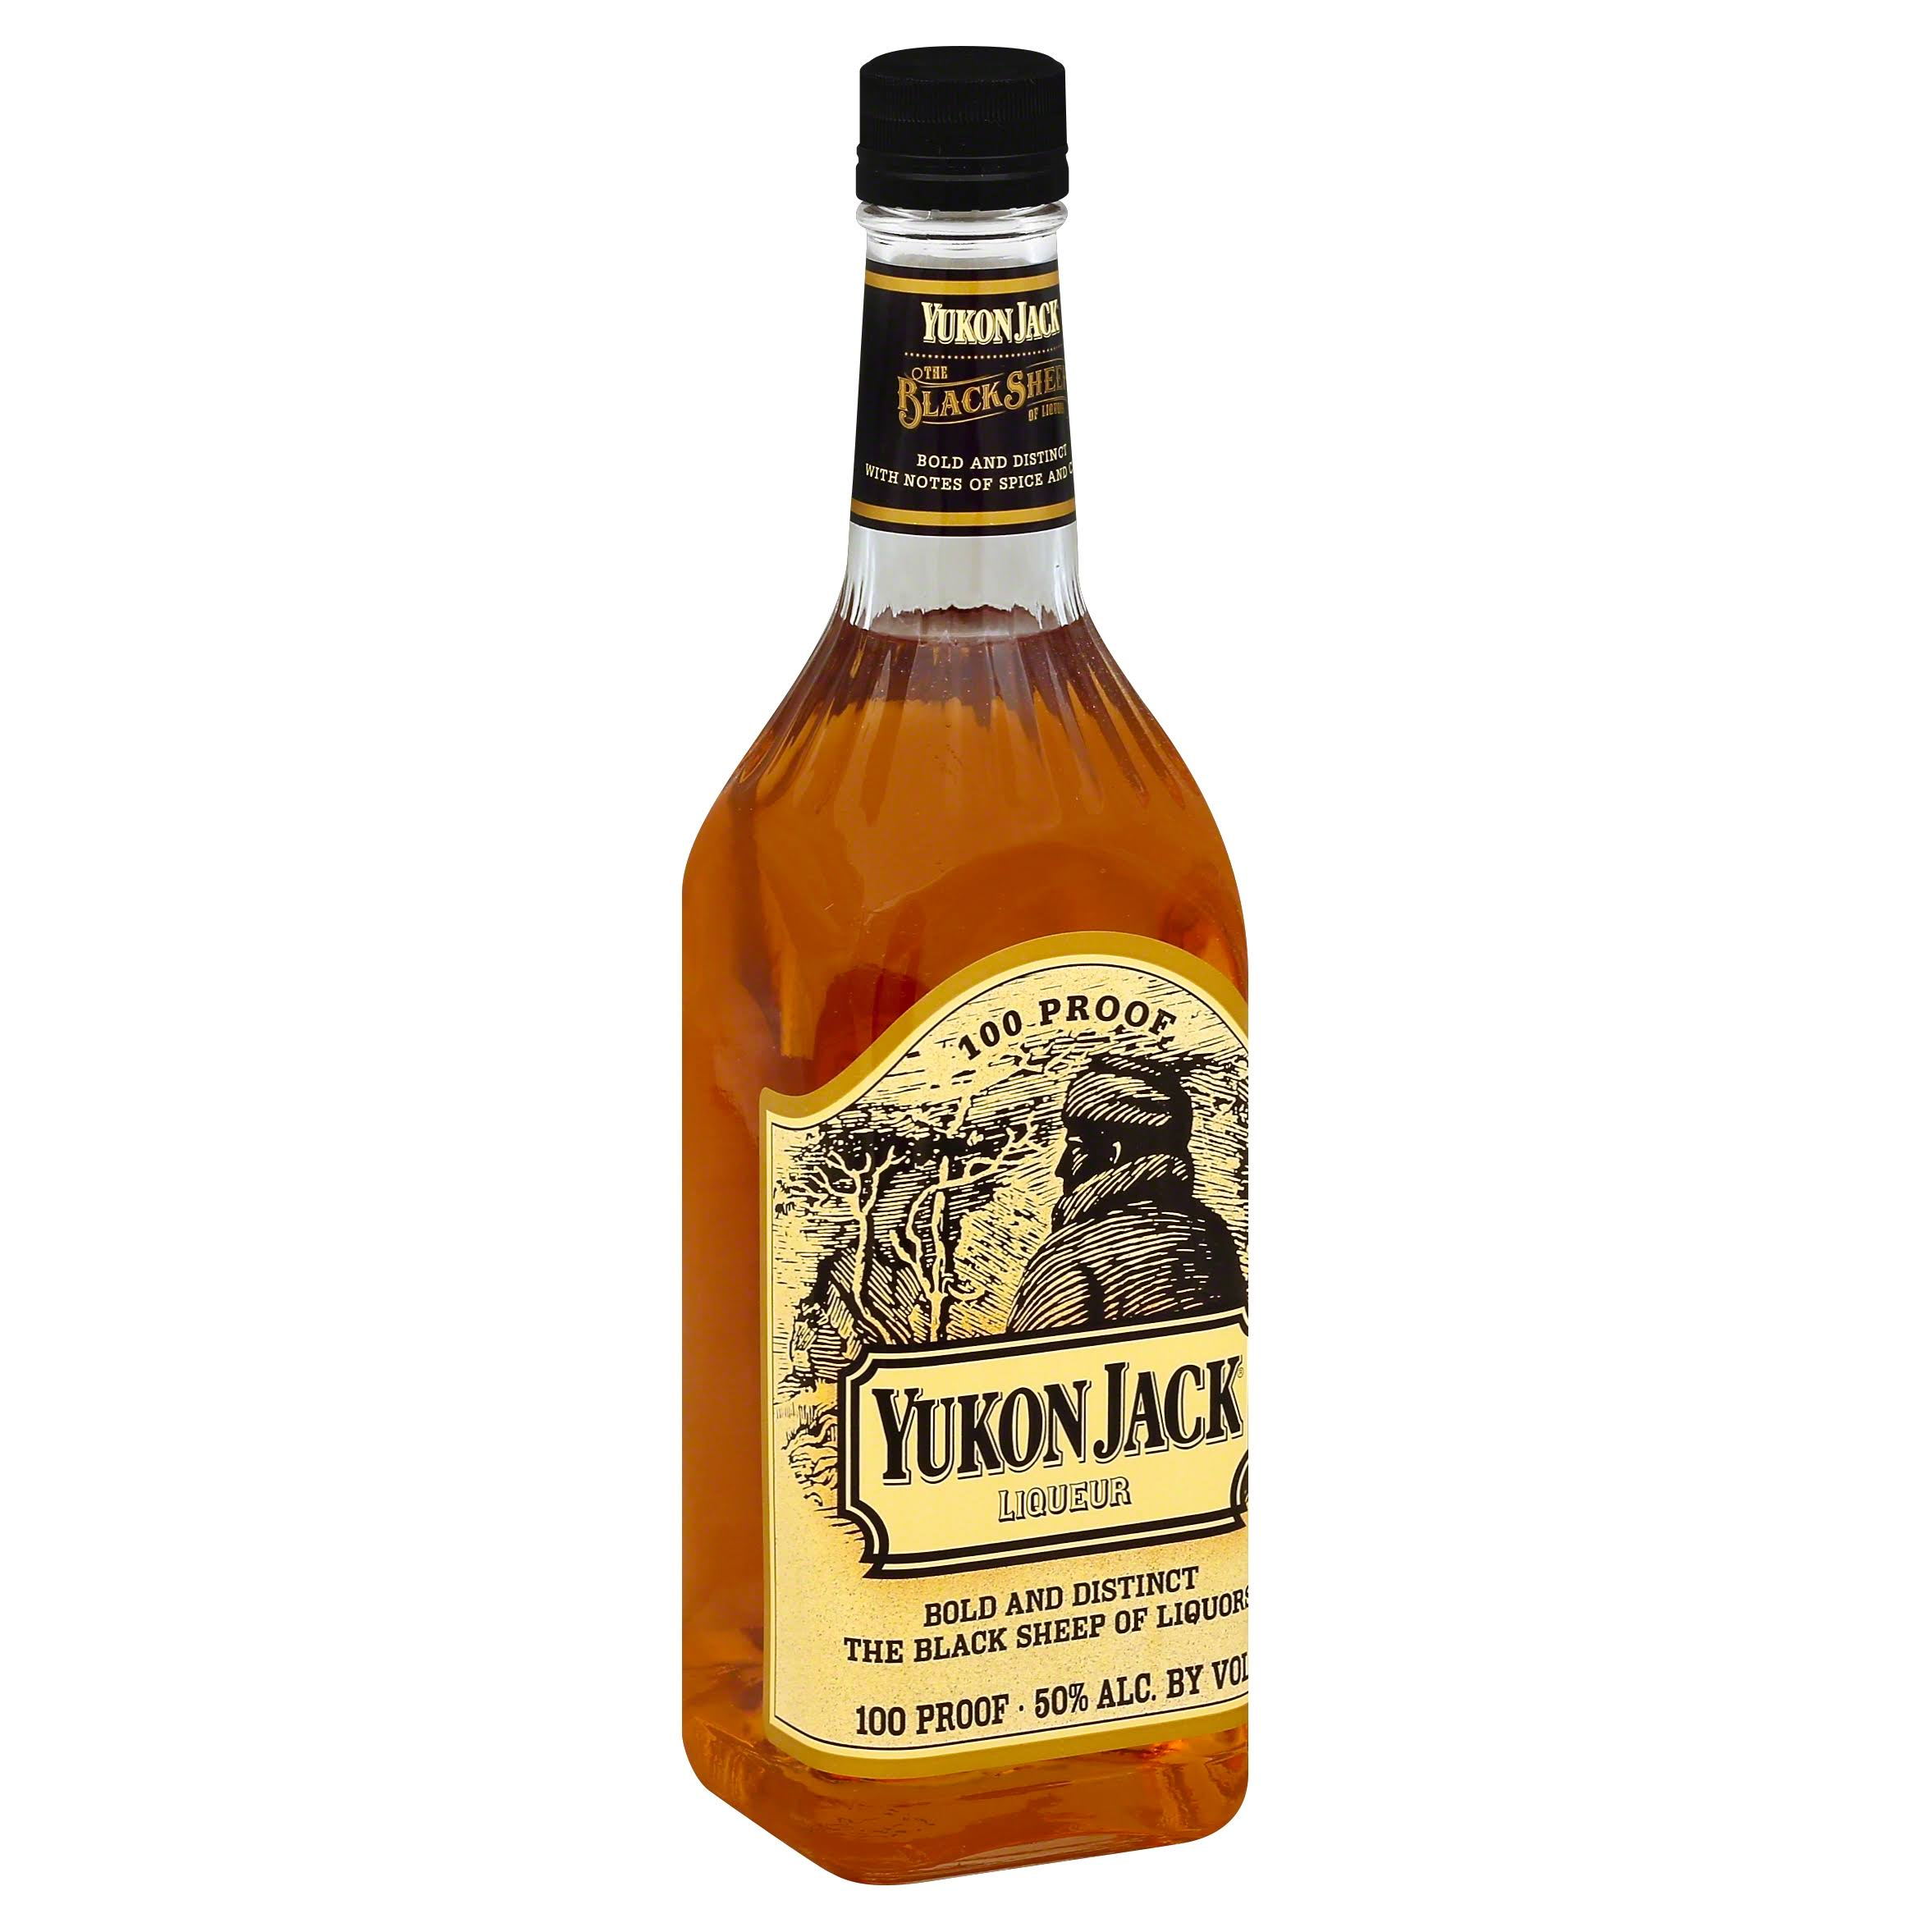 Yukon Jack Wicked Hot Cinnamon Whiskey